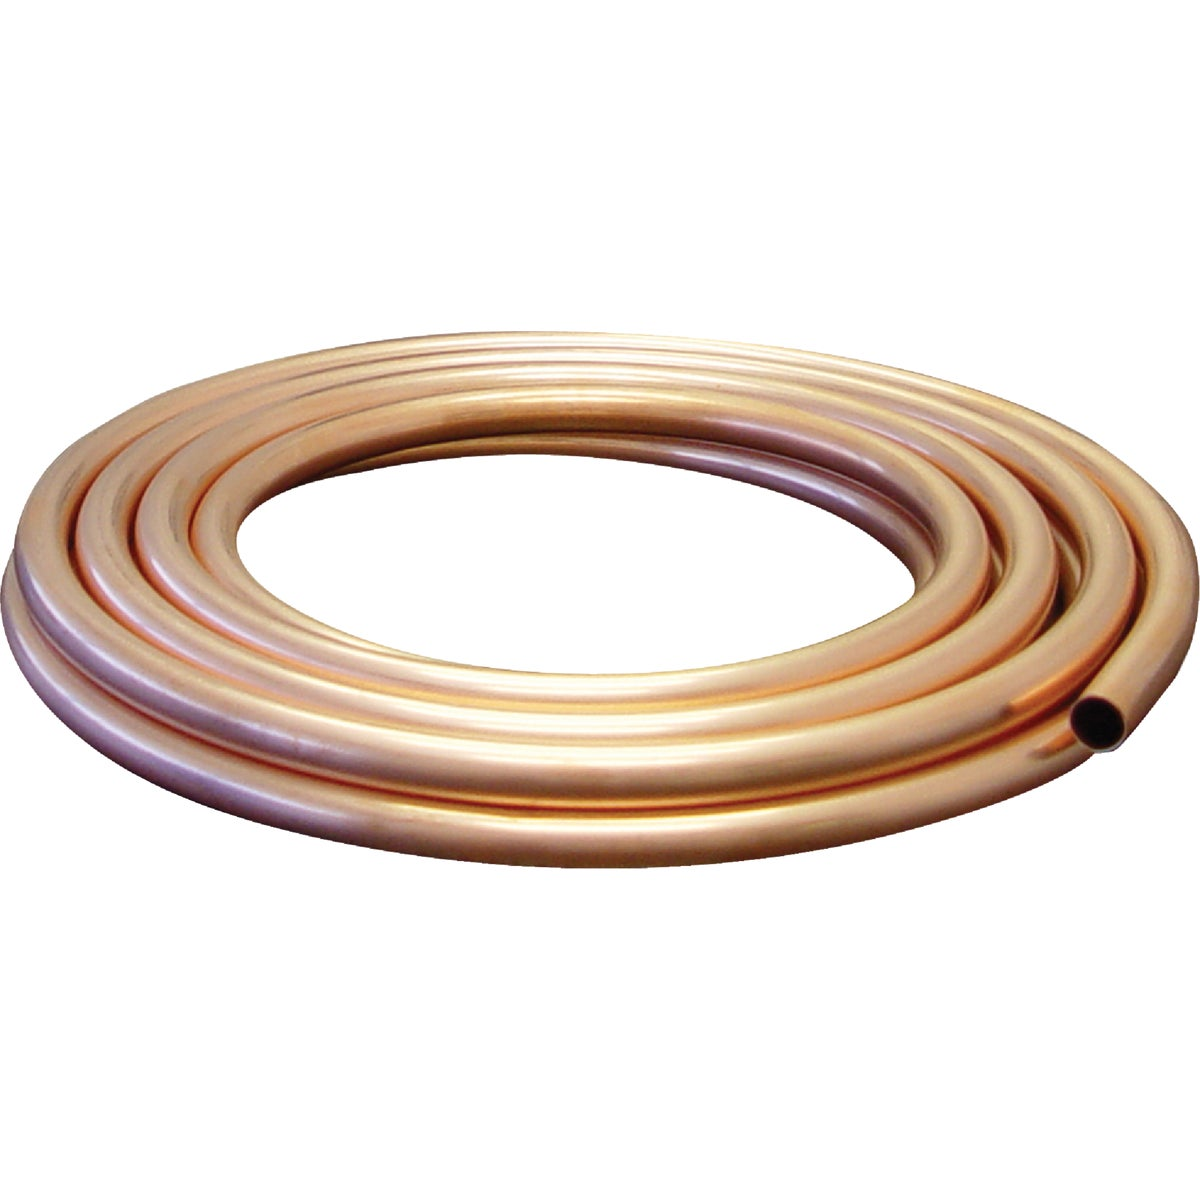 "1/4""IDX10' L COPPER TUBE"